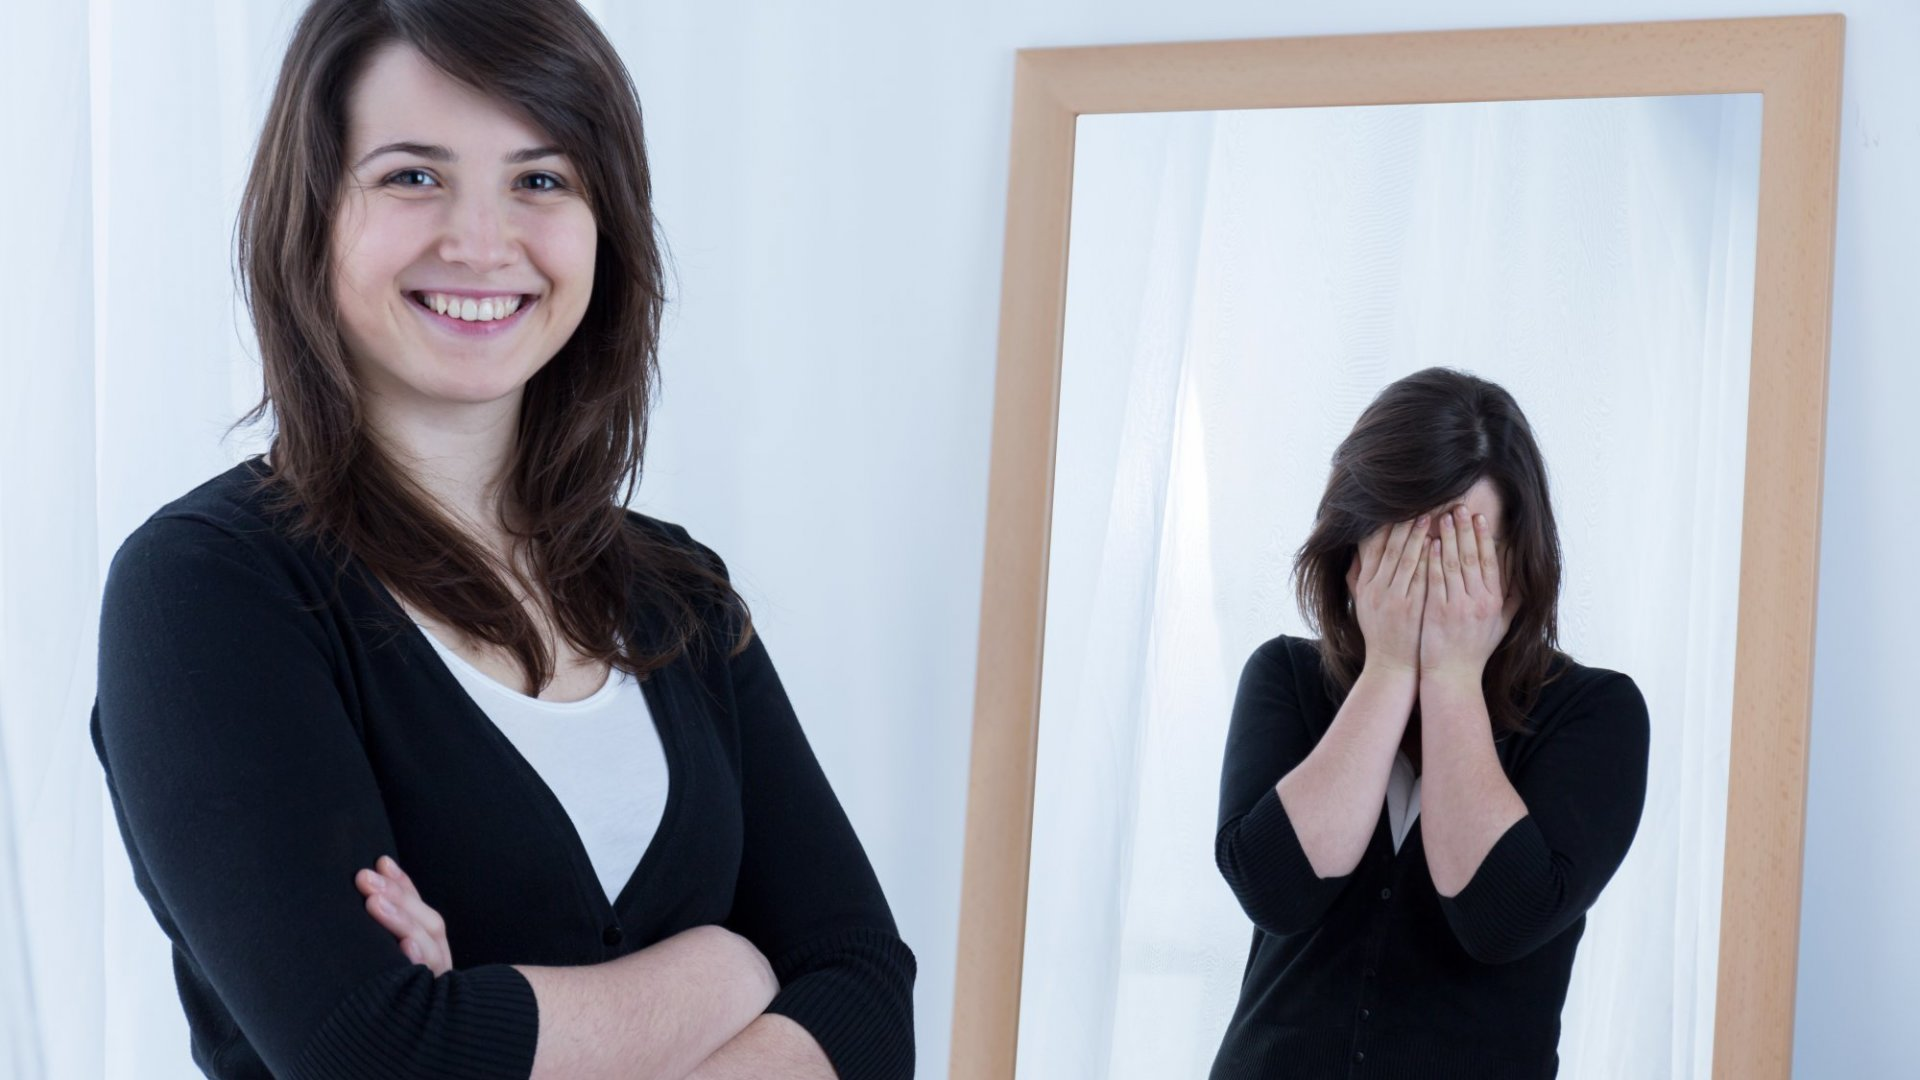 You're the Real Deal: How to Combat Imposter Syndrome